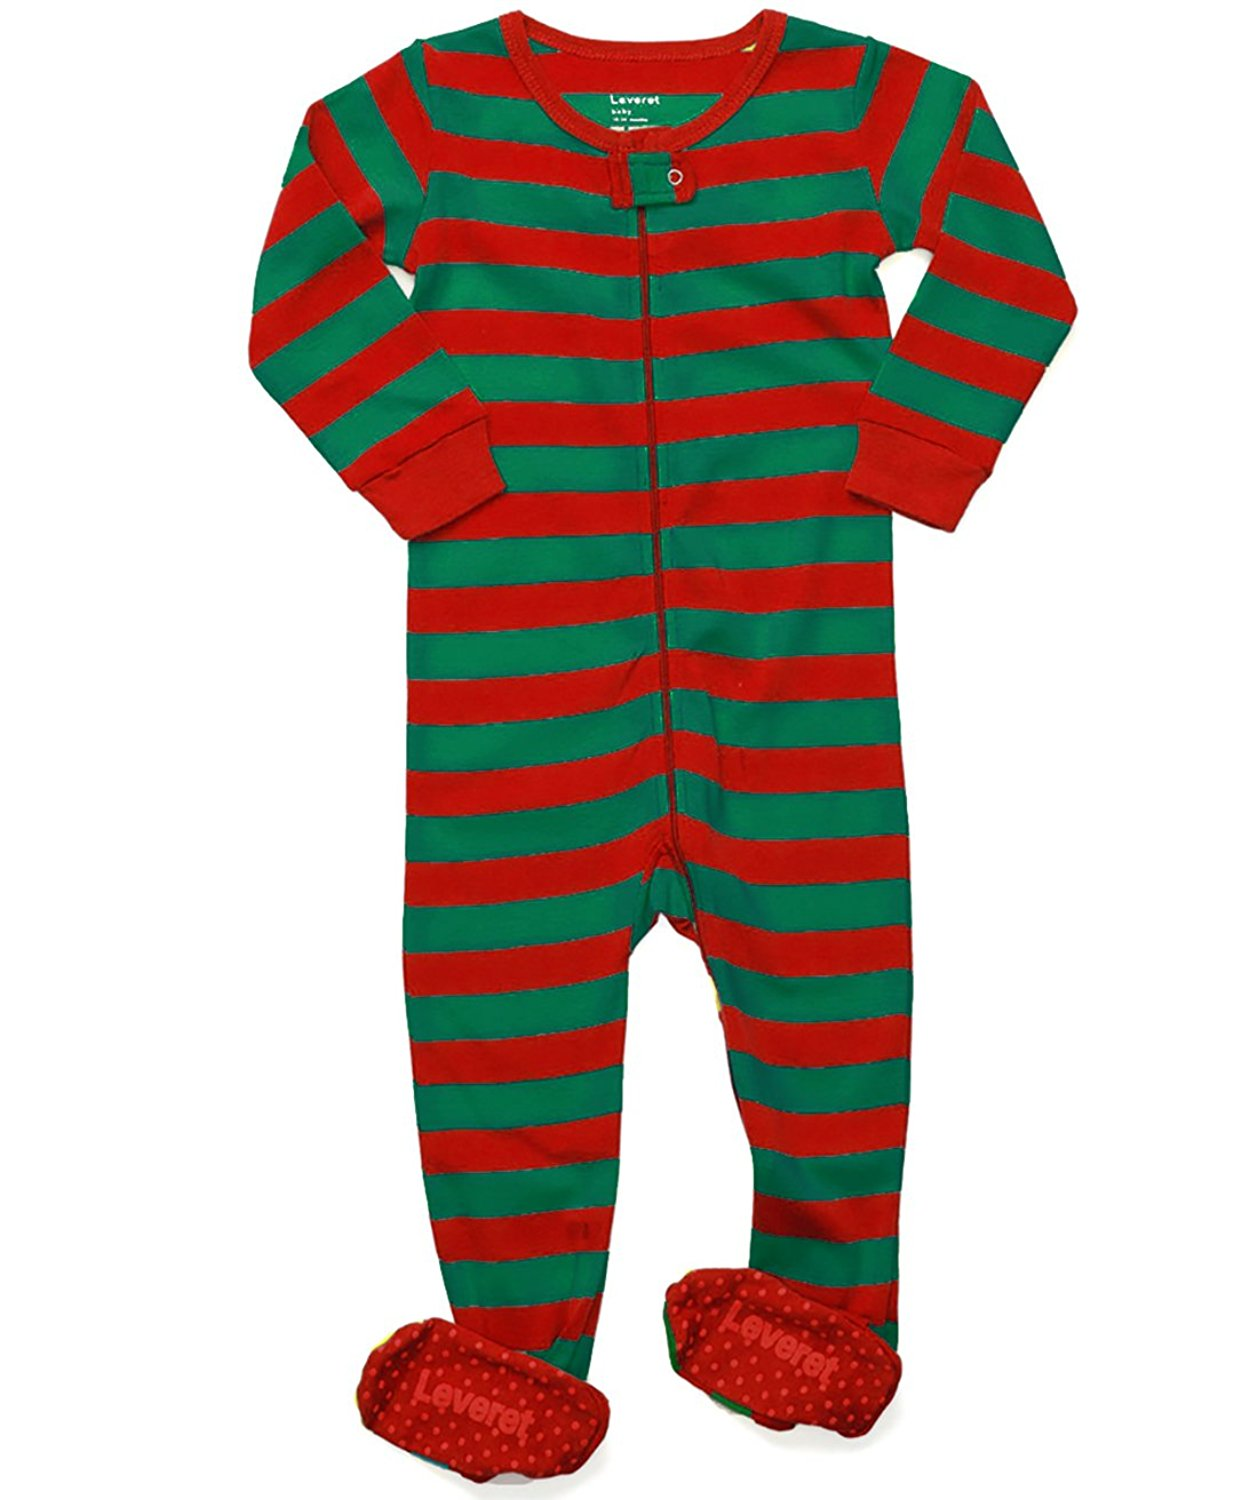 Leveret Striped Baby Boys Girls Footed Pajamas Sleeper 100/% Cotton Kids /& Toddler Christmas Pjs 3 Months-5 Toddler